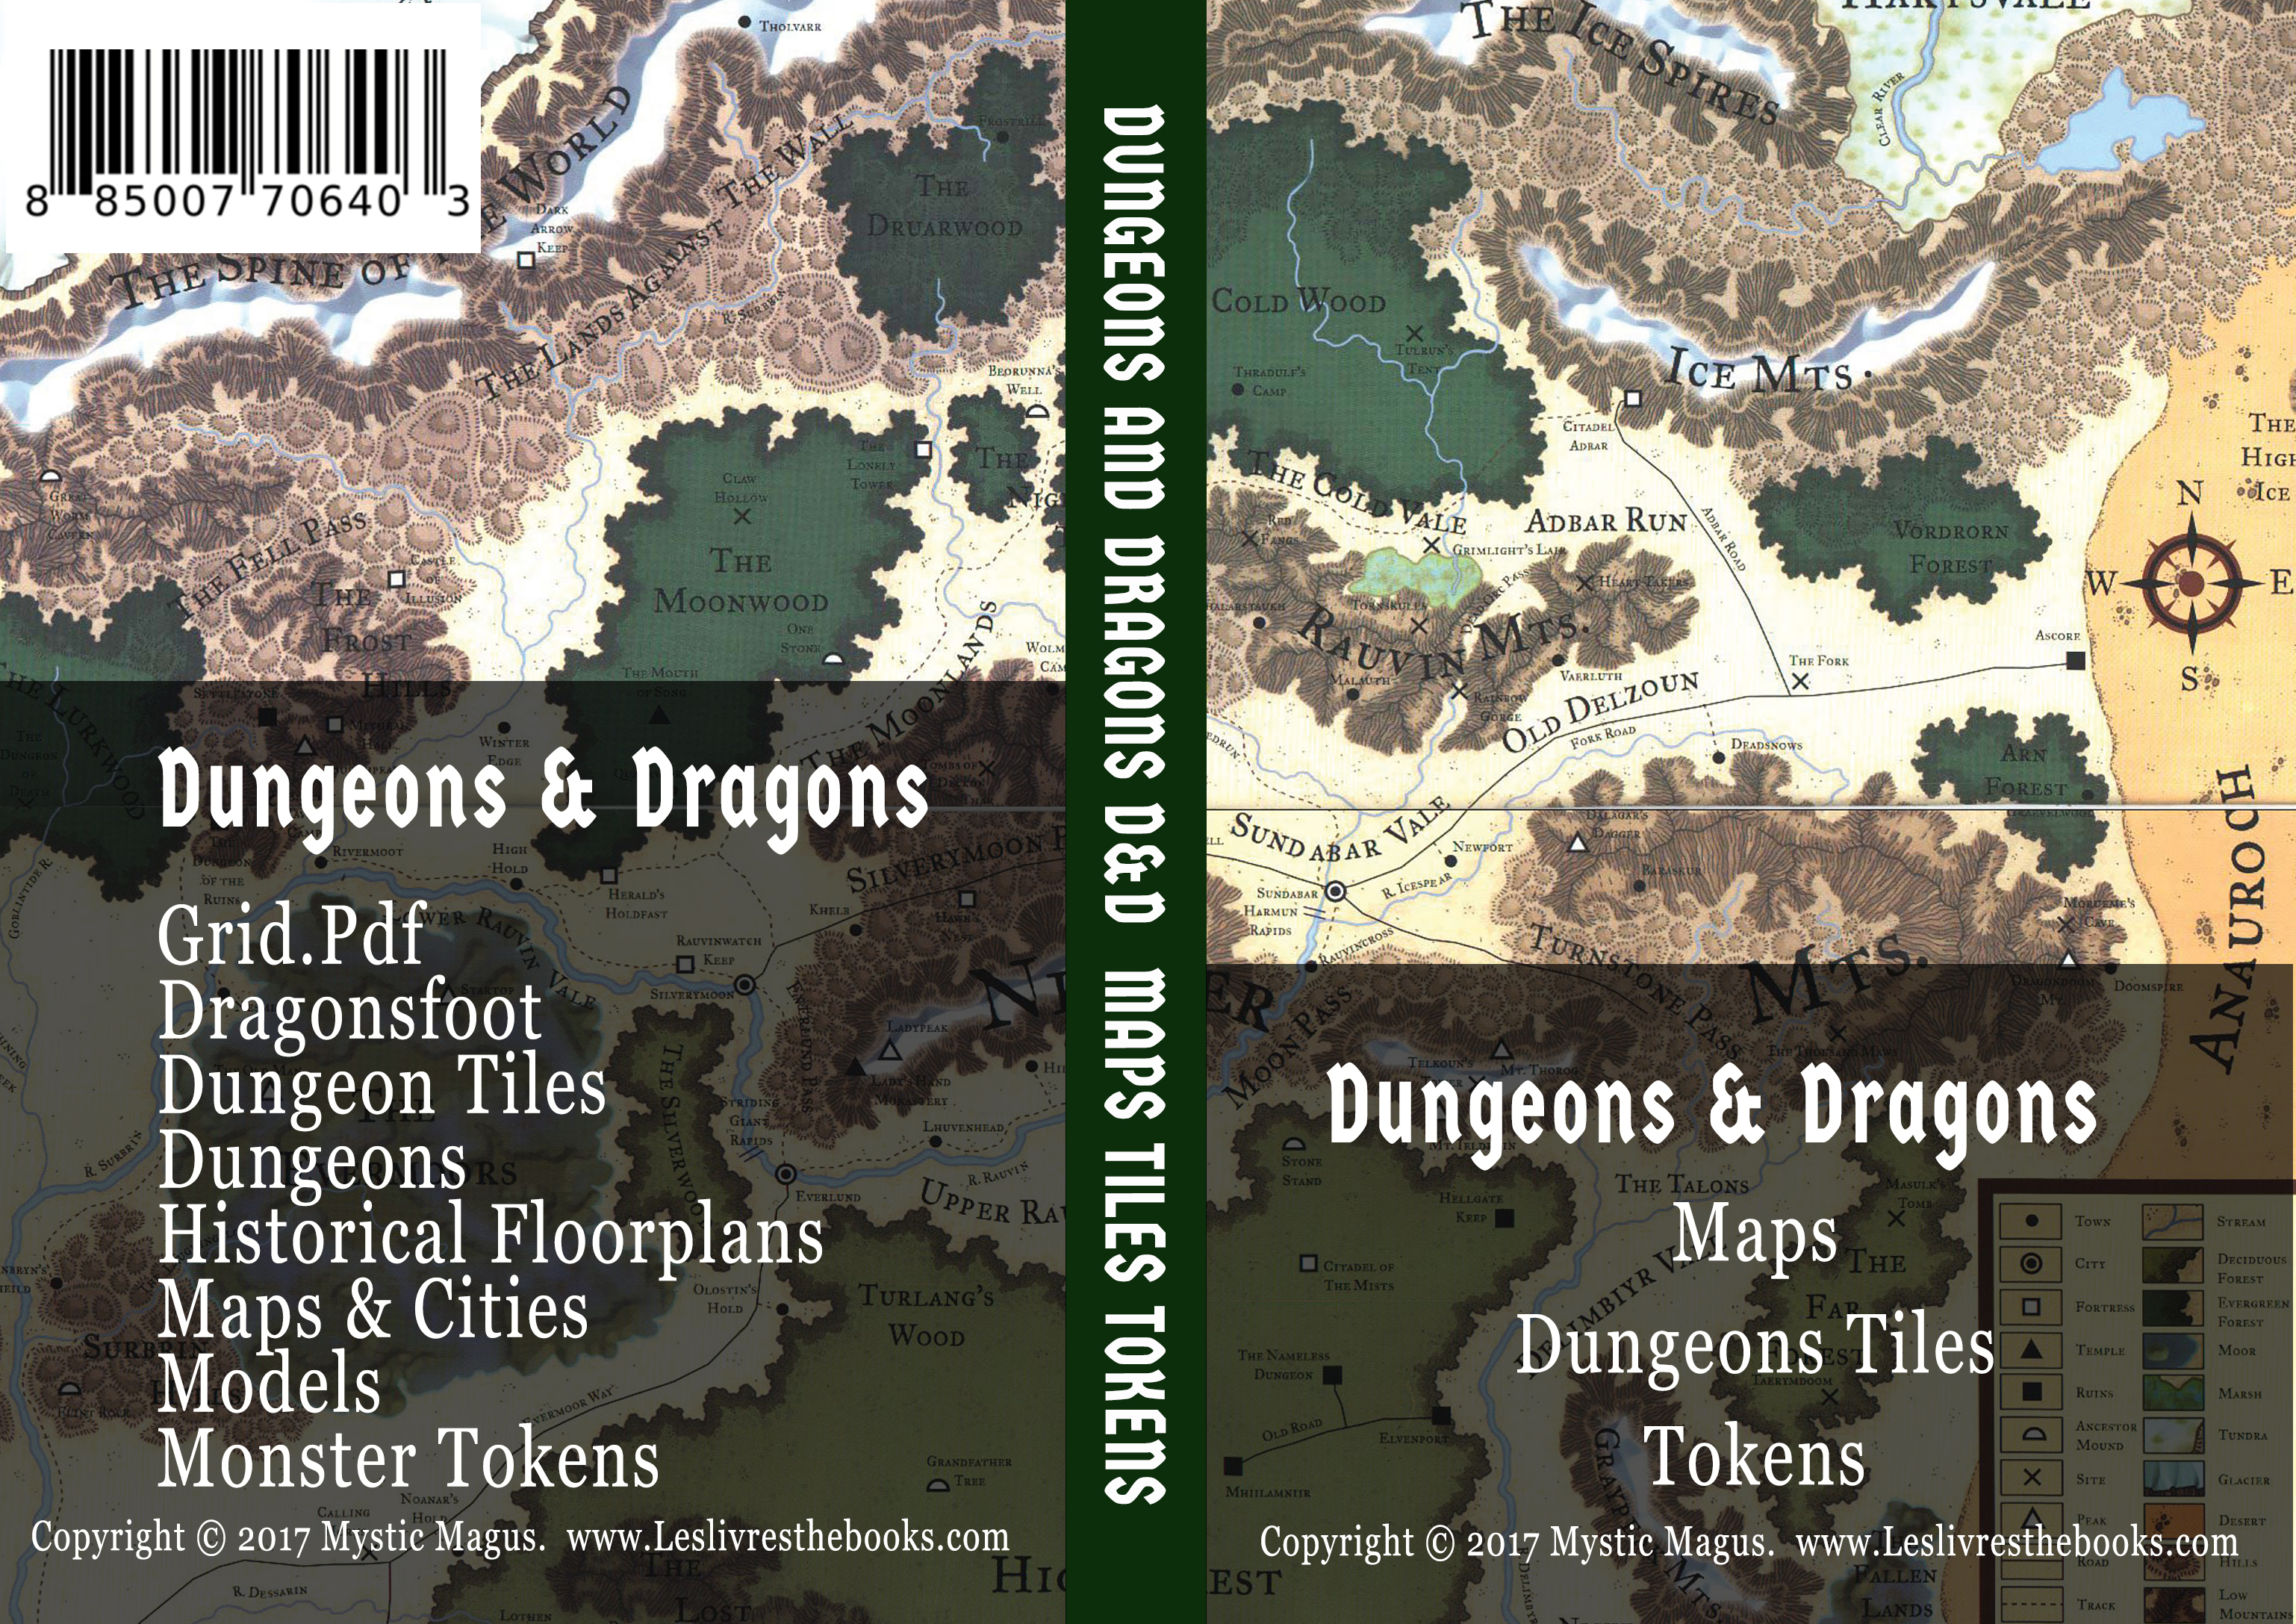 Image for Dungeons And Dragons, / D&D, / RPG, / Dungeon Master, / Maps, / Dungeons, / Dungeons Tiles, / Monster Tokens, / Books on USB Flash Drive / With DVD Case